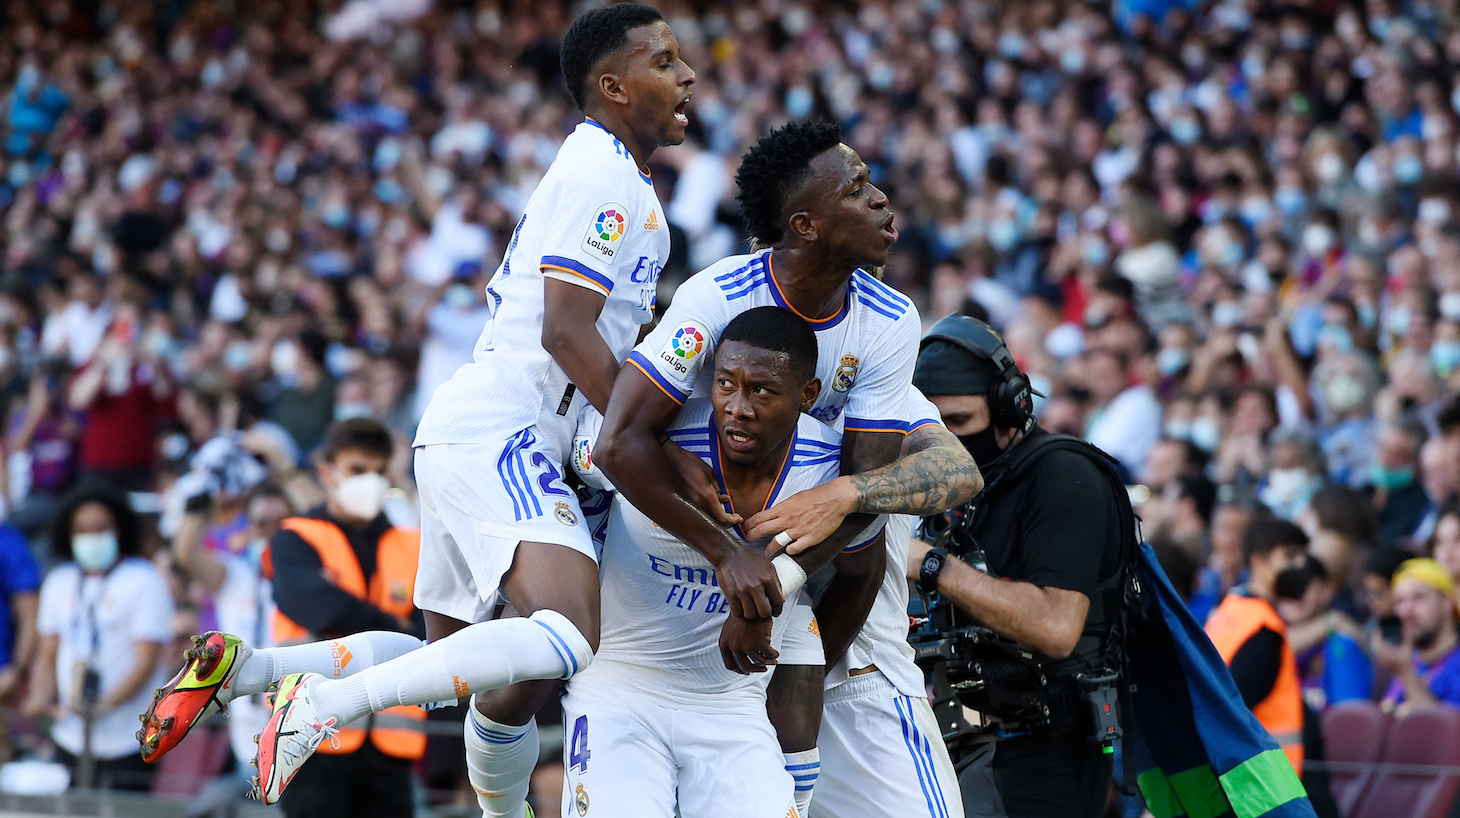 Real Madrid's Austrian defender David Alaba celebrates scoring the opening goal during the Spanish League football match between FC Barcelona and Real Madrid CF at the Camp Nou stadium in Barcelona on October 24, 2021.